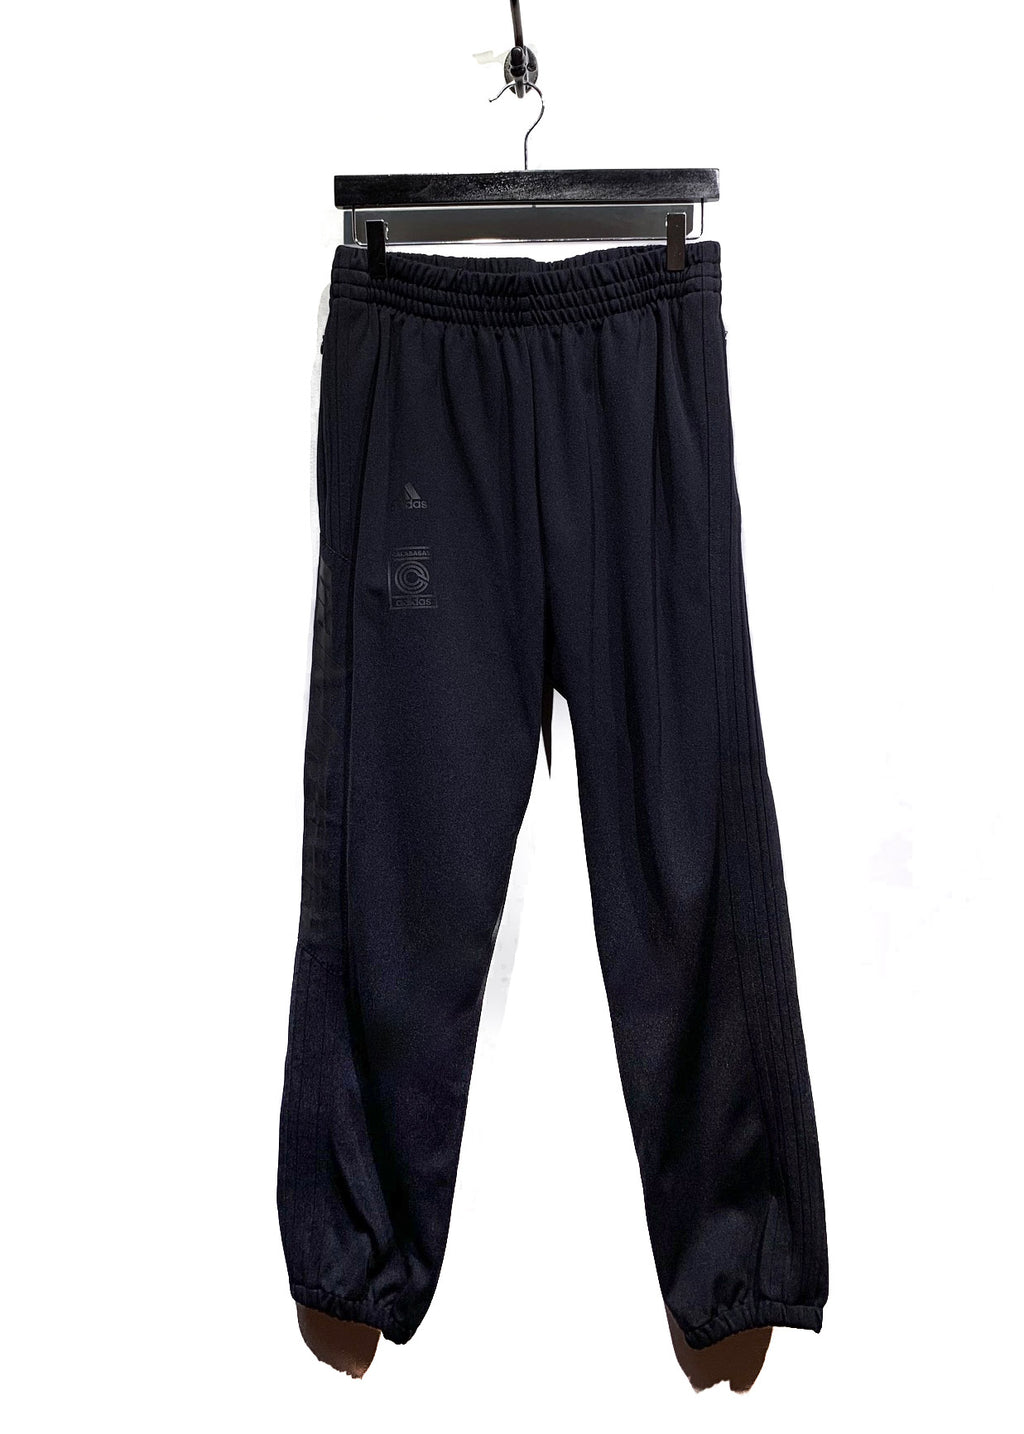 Adidas Black on Black Calabasas Logo Striped Track Pants